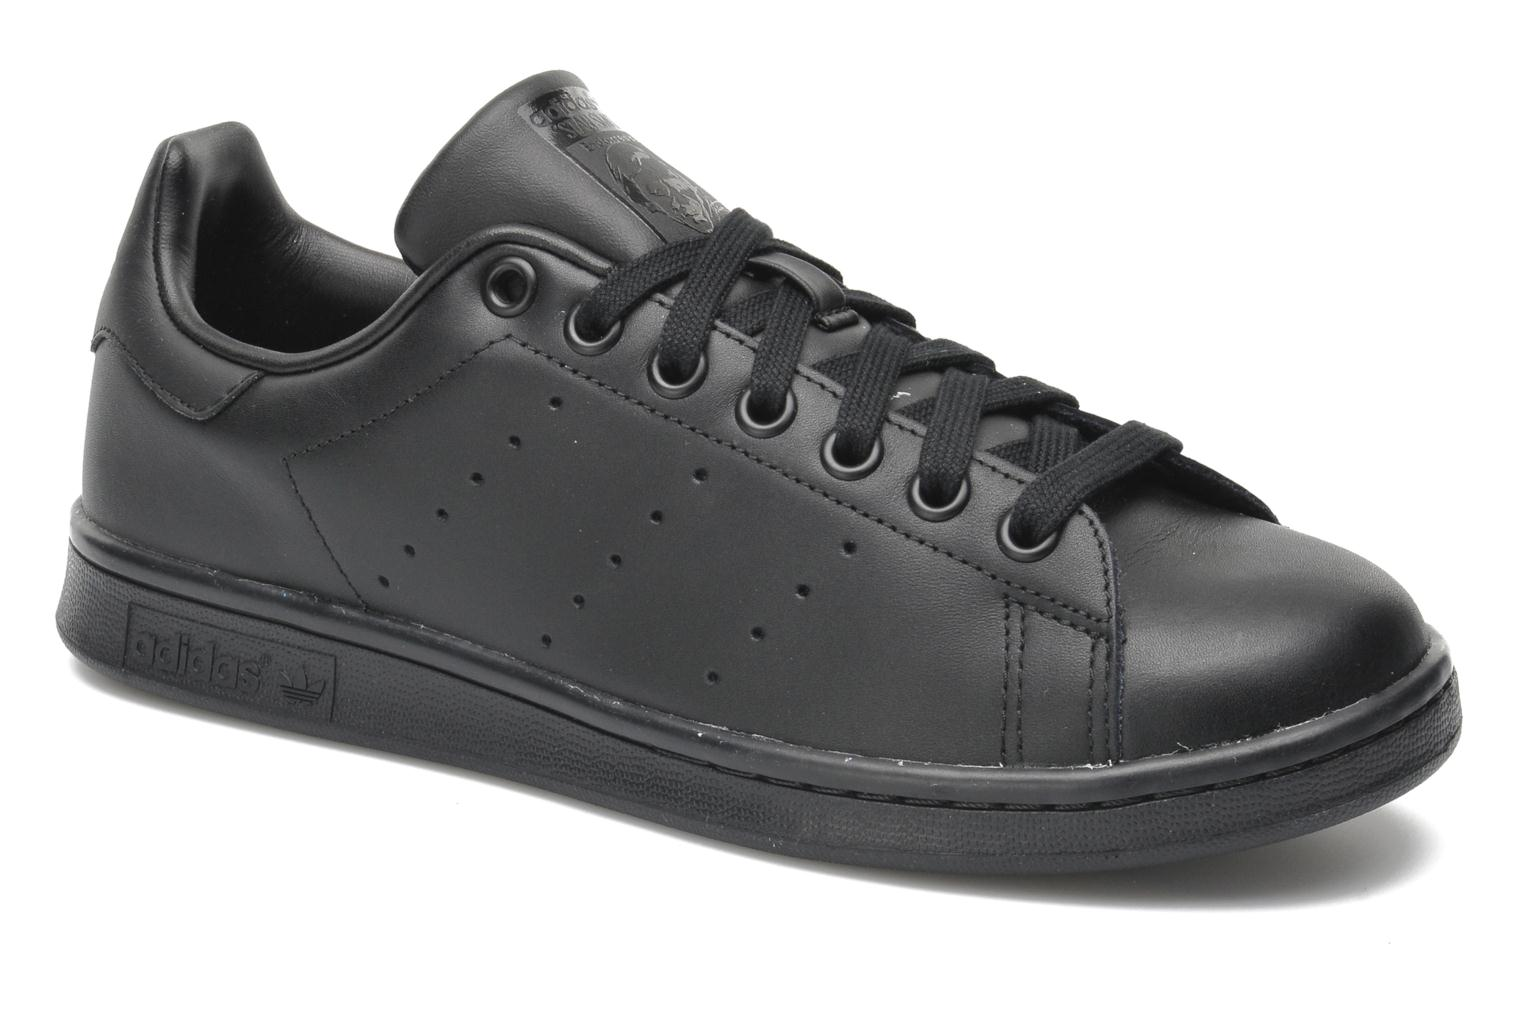 Stan Smith Noir1/Noir1/Noir1